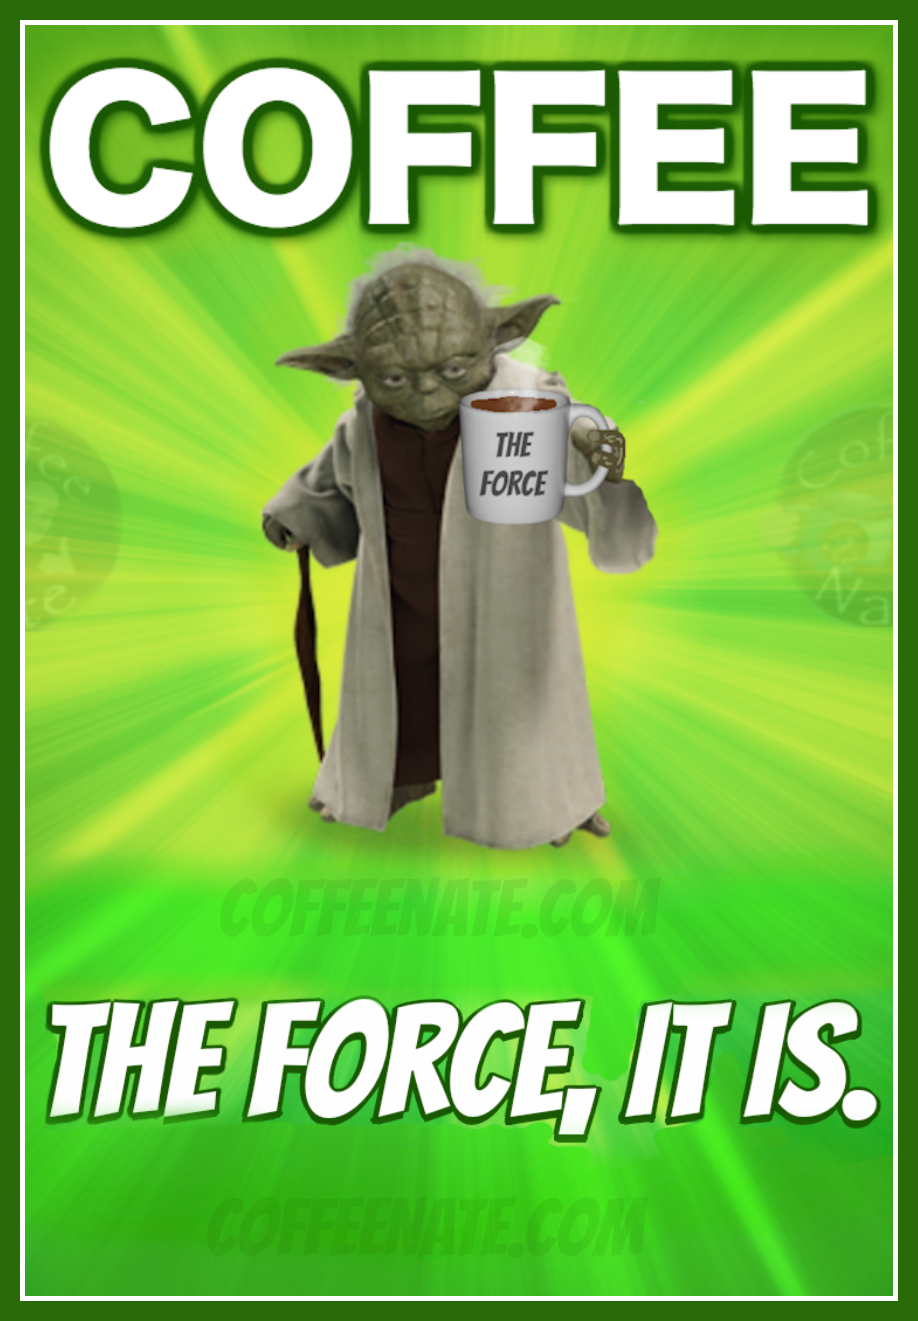 Absolutely CORRECT, Yoda IS! For MY CAFFEINATED Christian